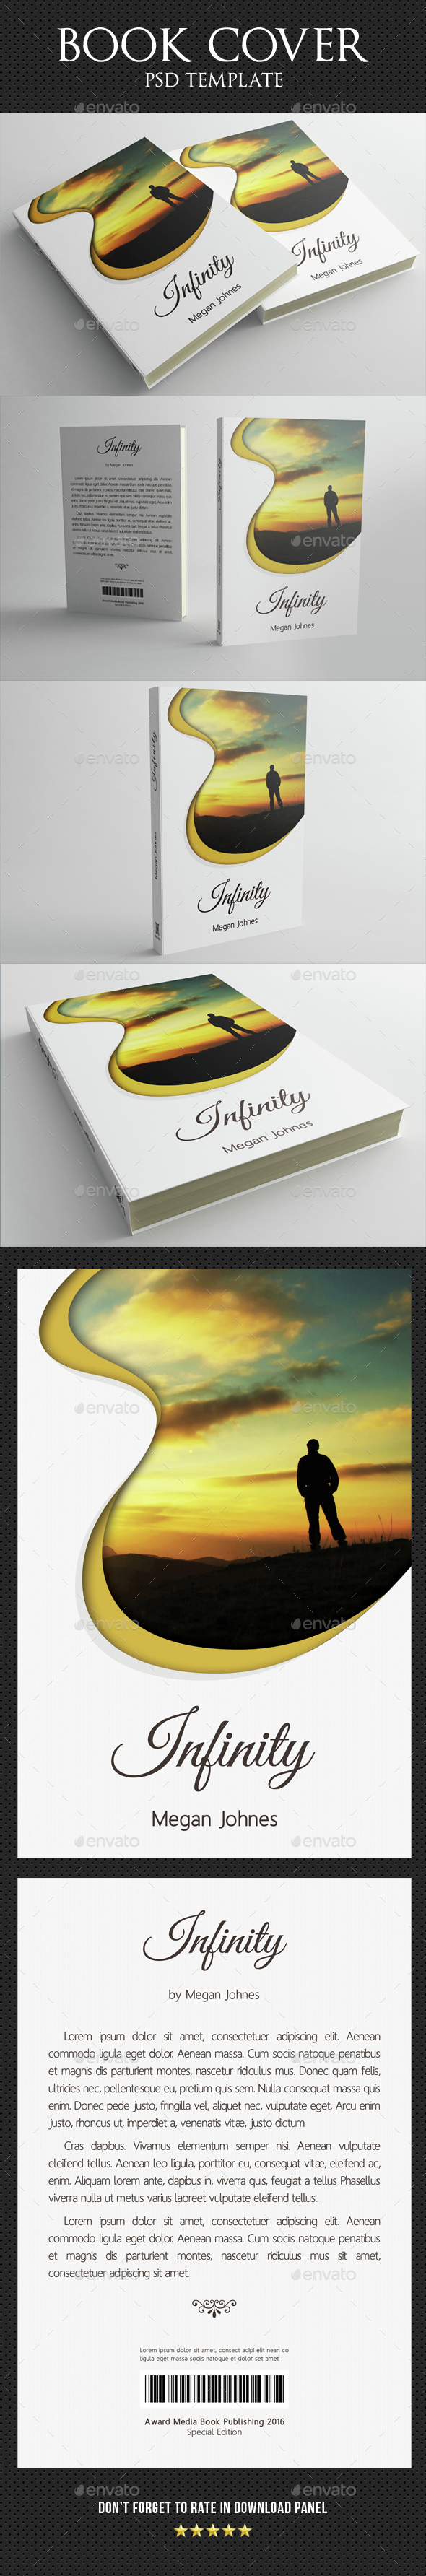 Book Cover Template 05